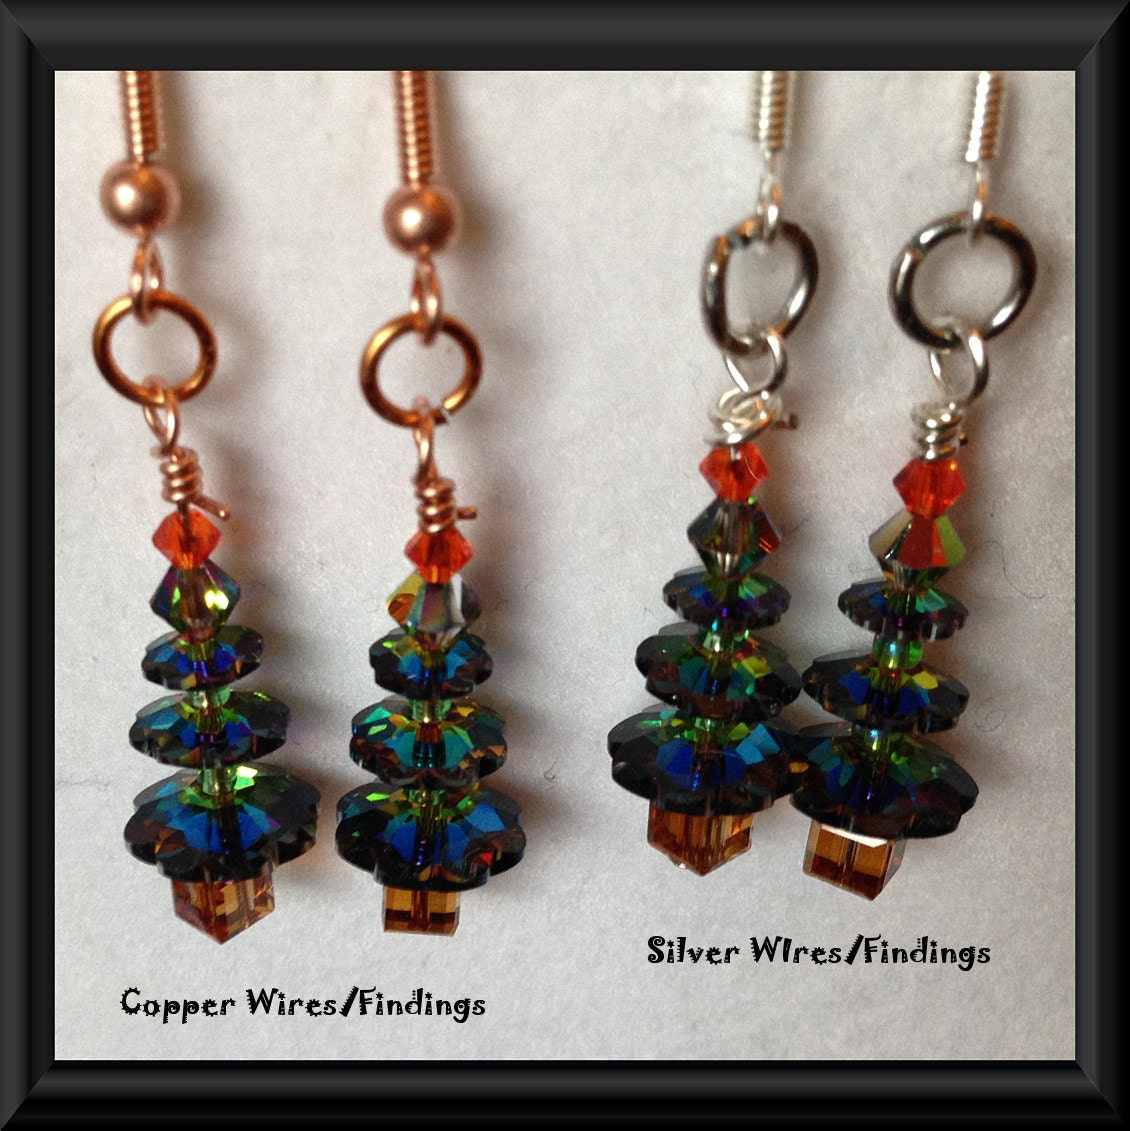 Christmas Tree SWAROVSKI Crystal EARRINGS: Sparkling Iridescent Red,Green & Gold Genuine Swarovski Crystals, Sterling Silver/Copper Earwires - TwinklingOfAnEye